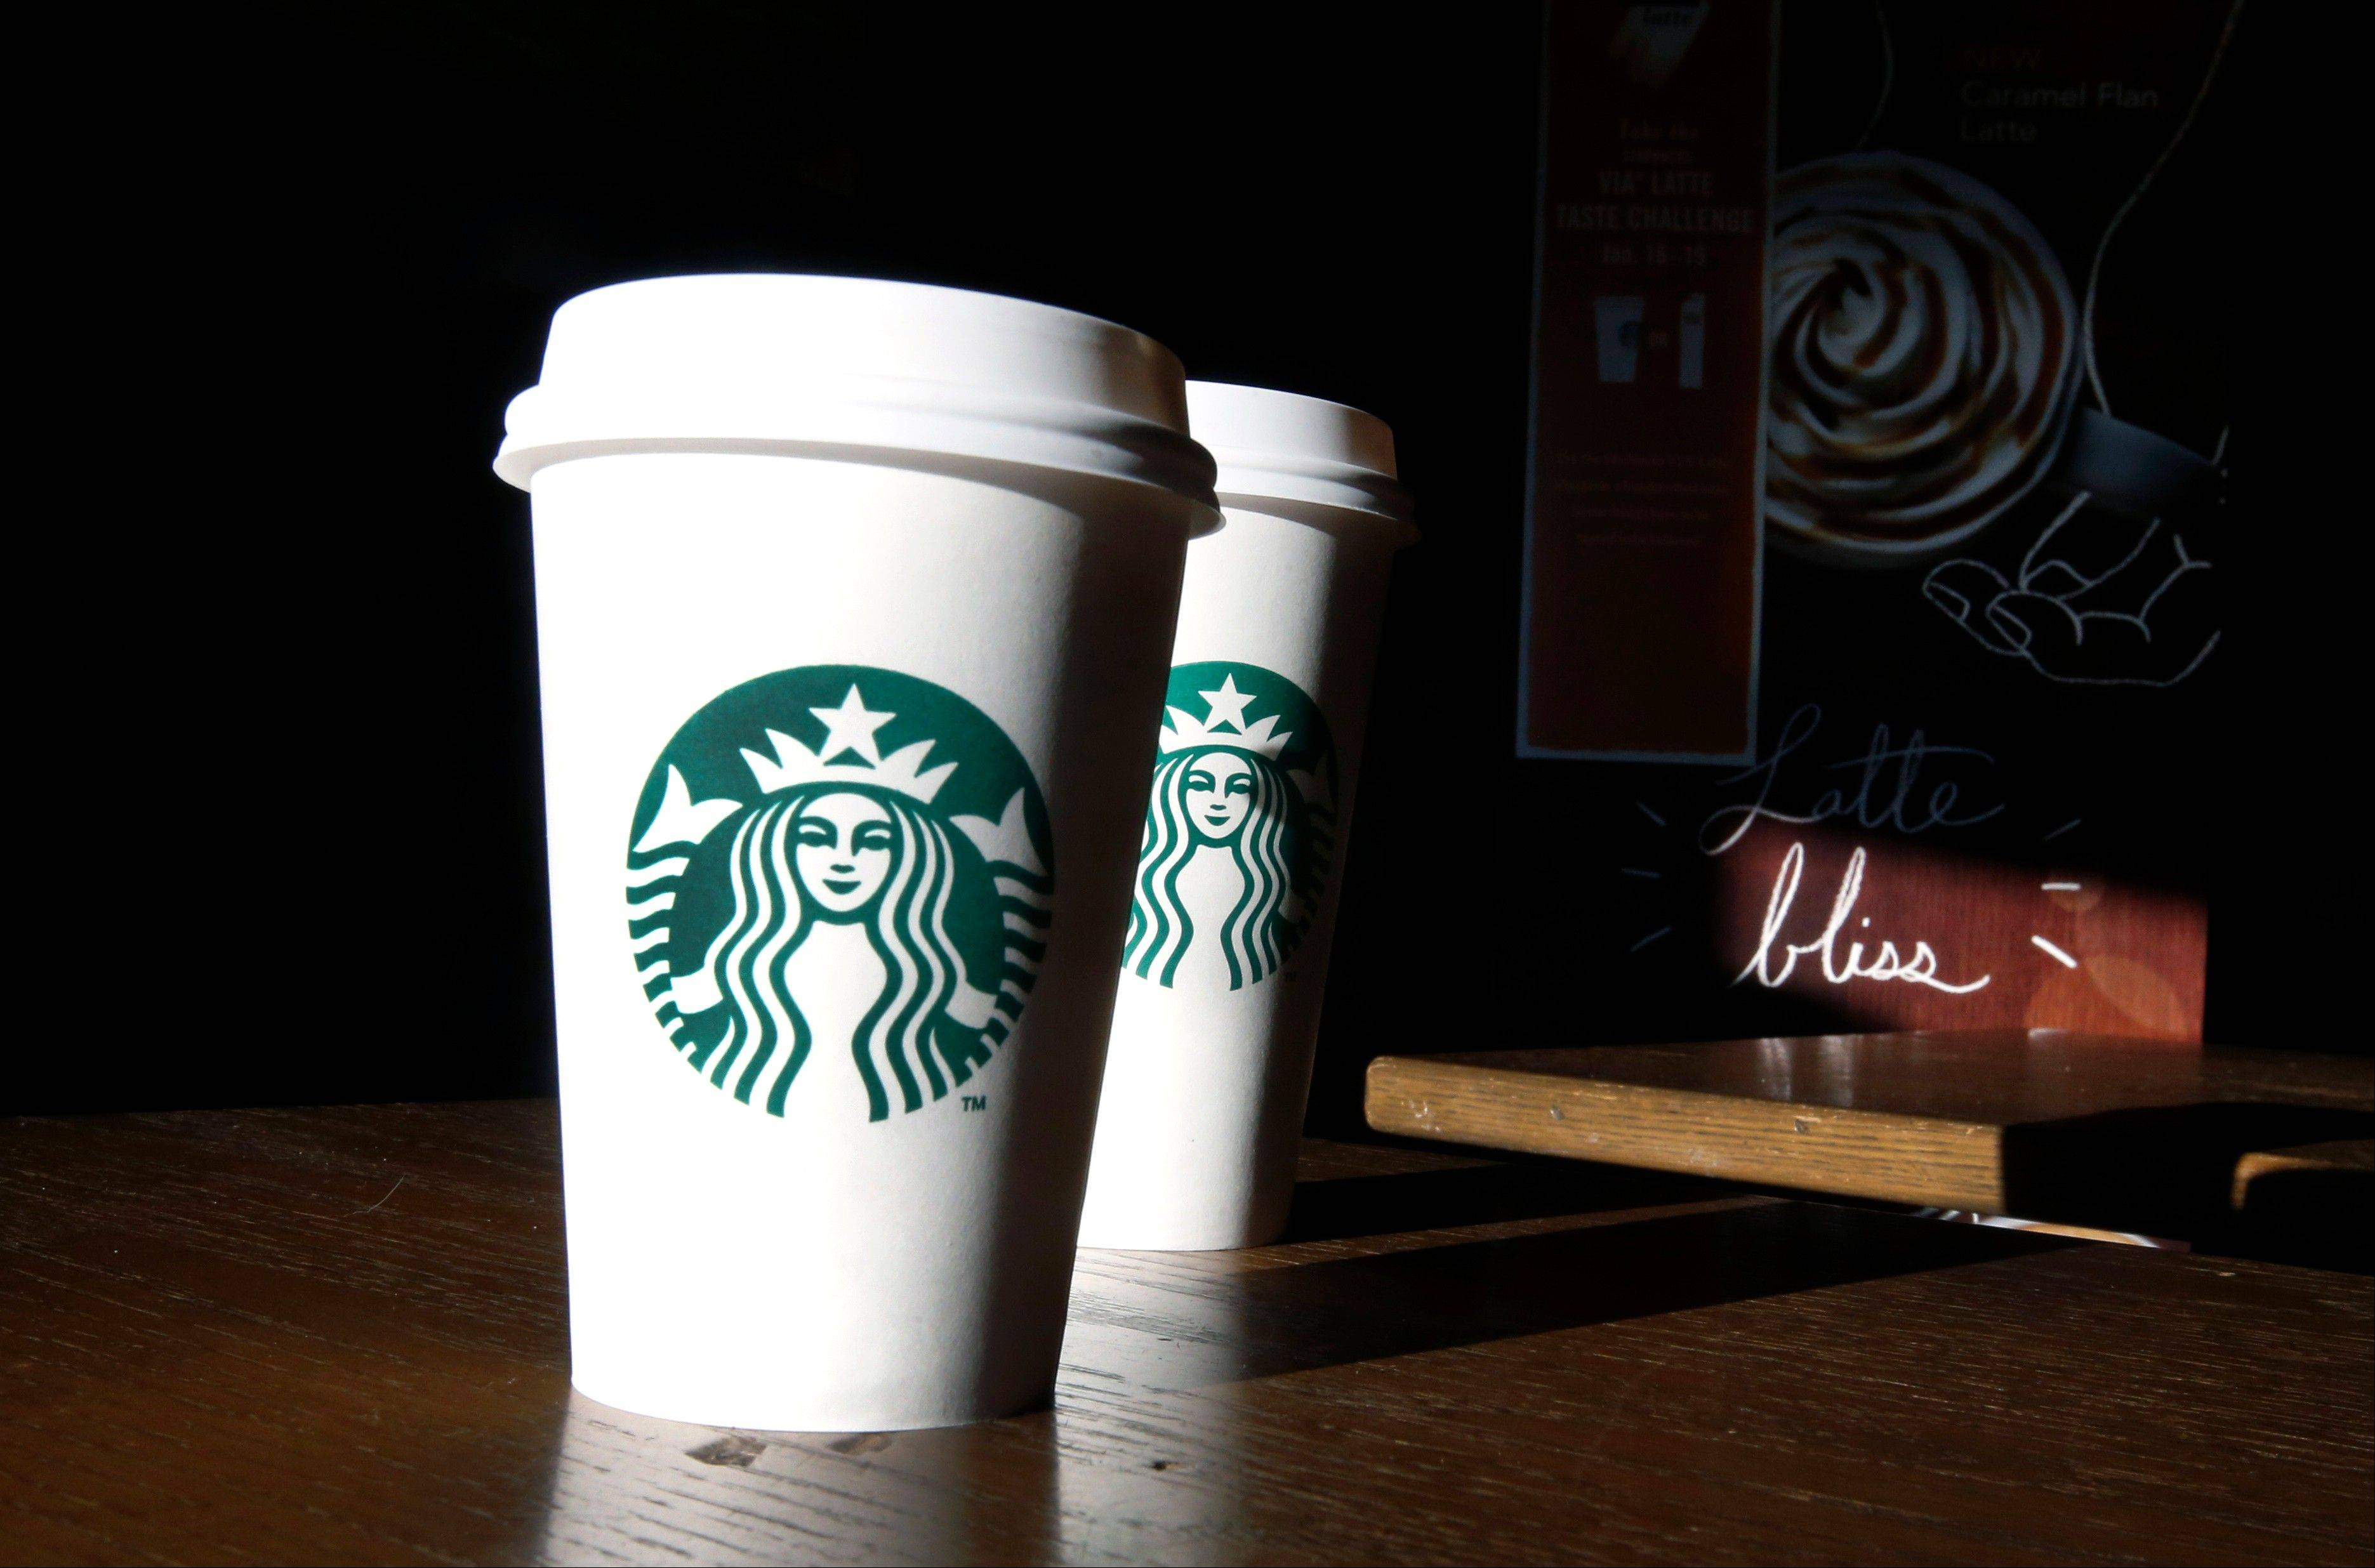 Starbucks says its quarterly profit rose by 25 percent as it benefited from lower coffee costs and stronger sales around the world.